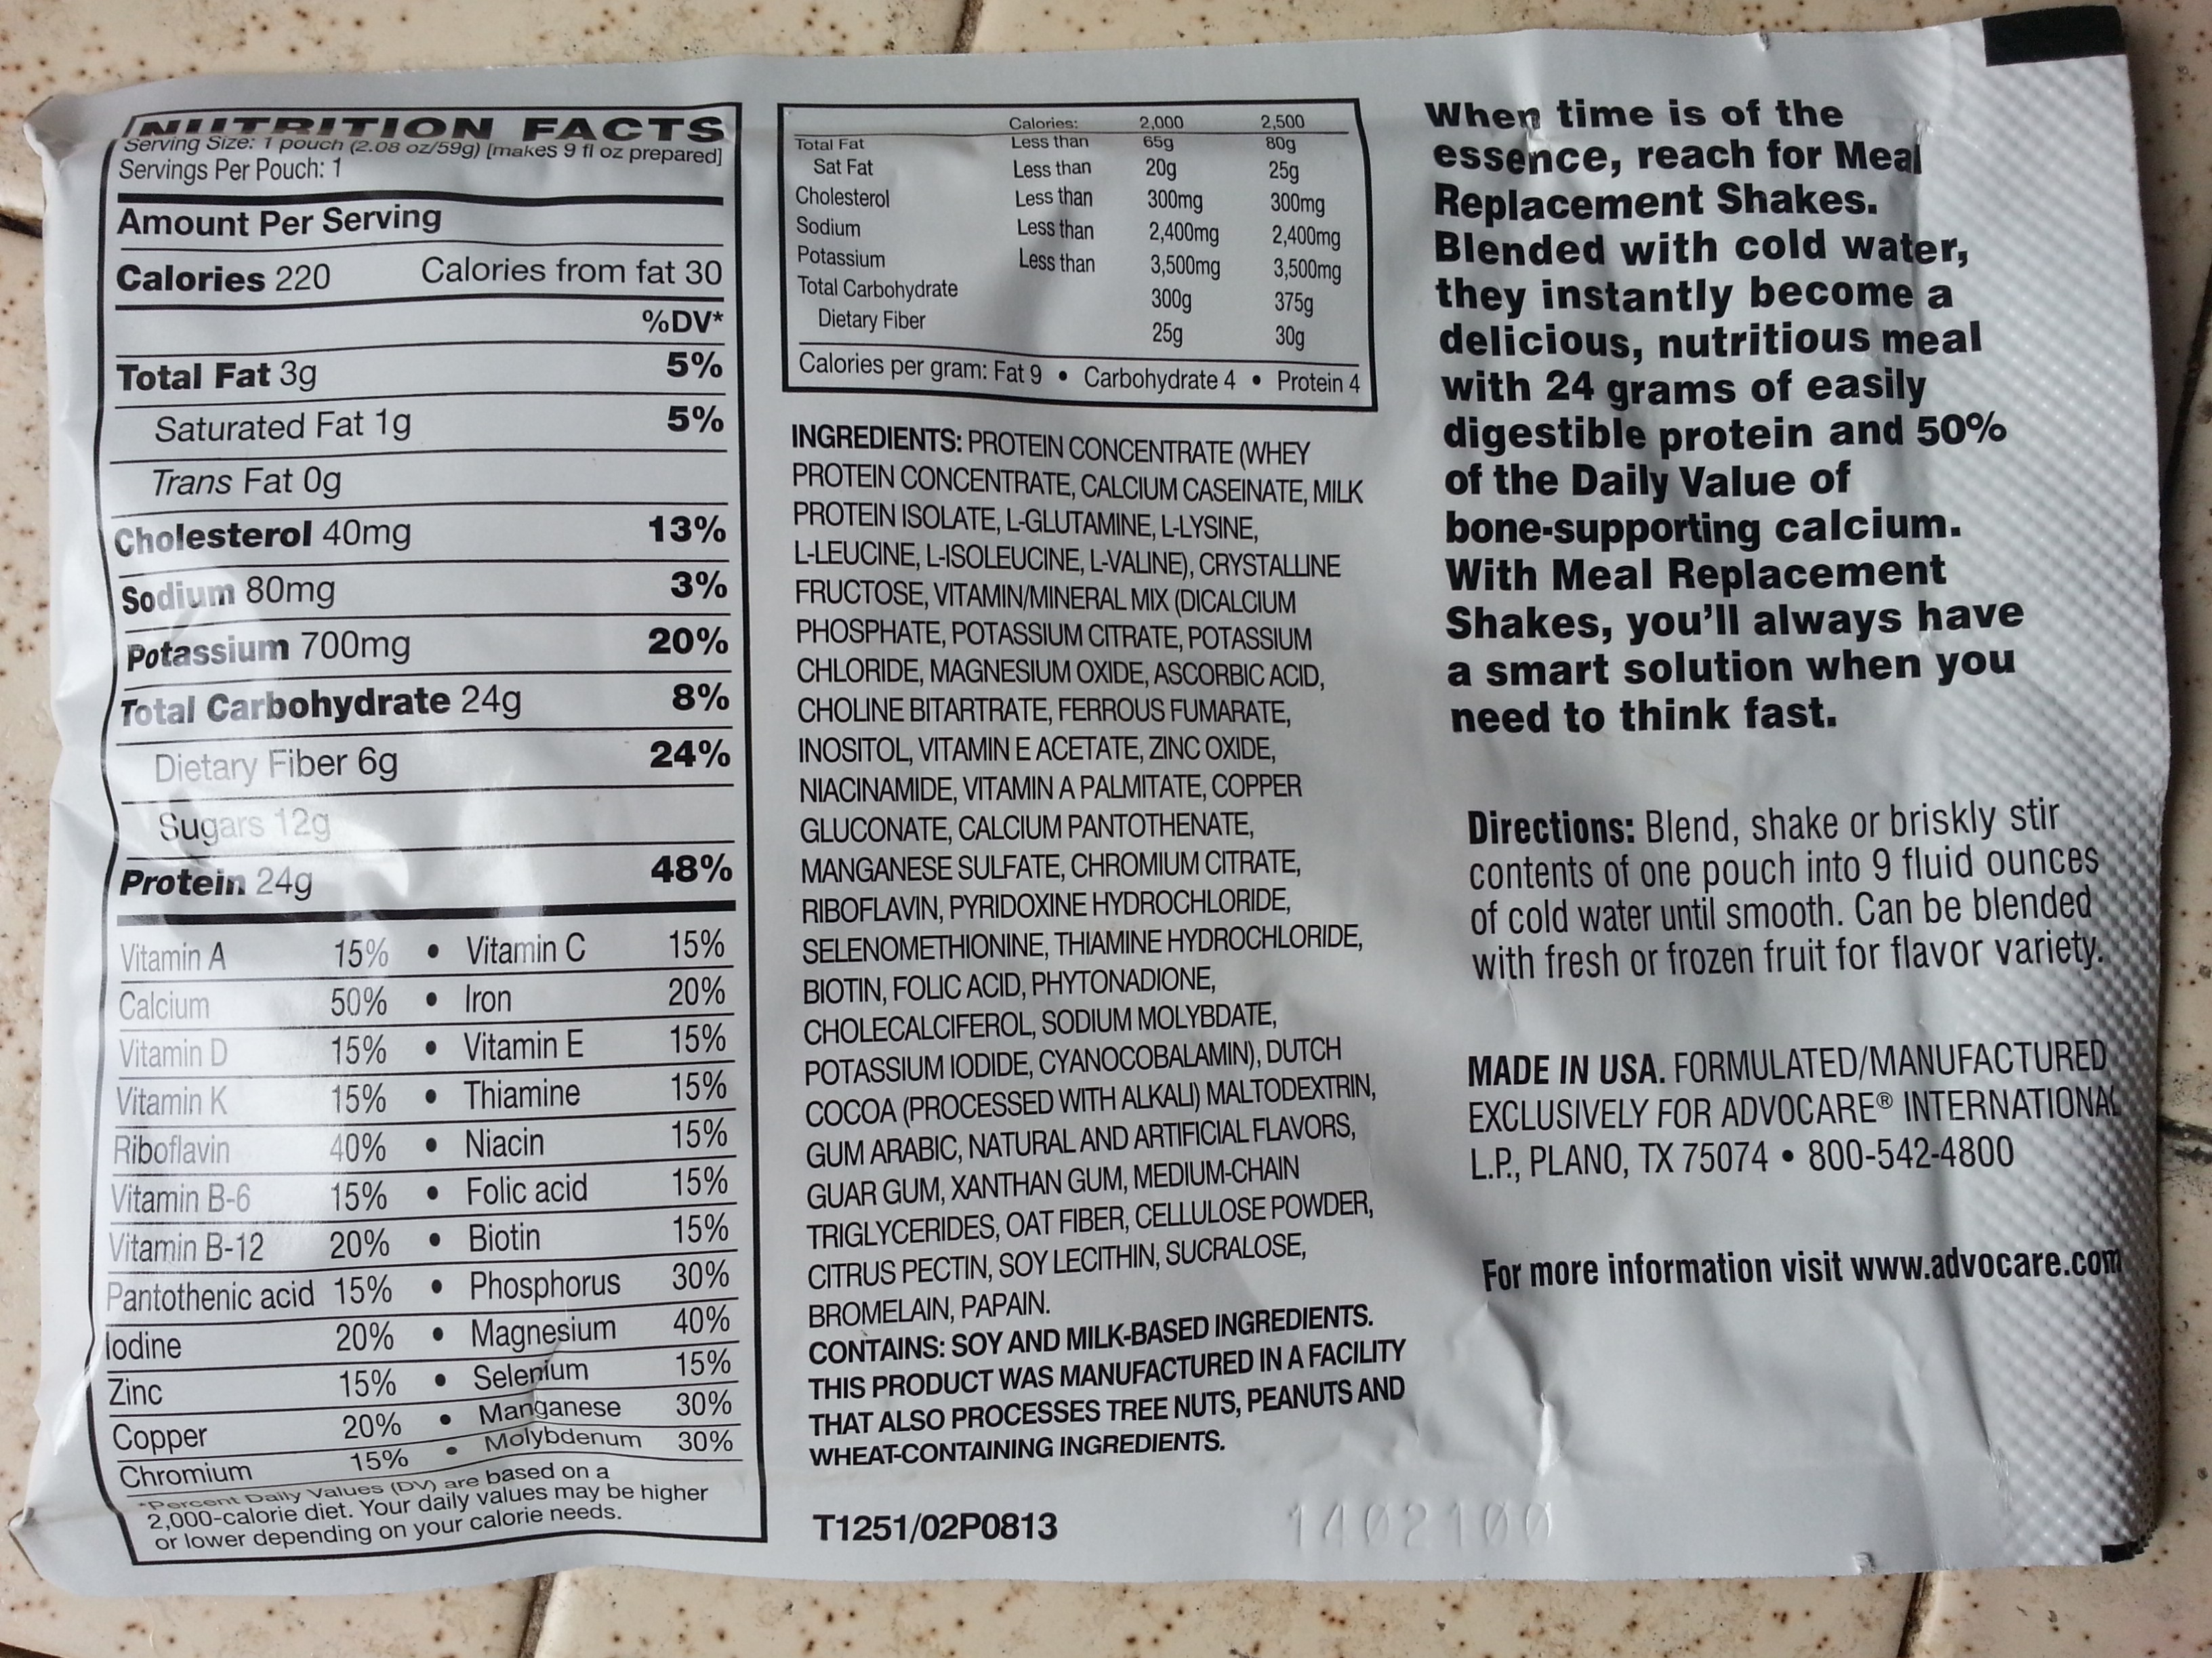 Advocare Chocolate Meal Replacement Shake Nutrition Facts